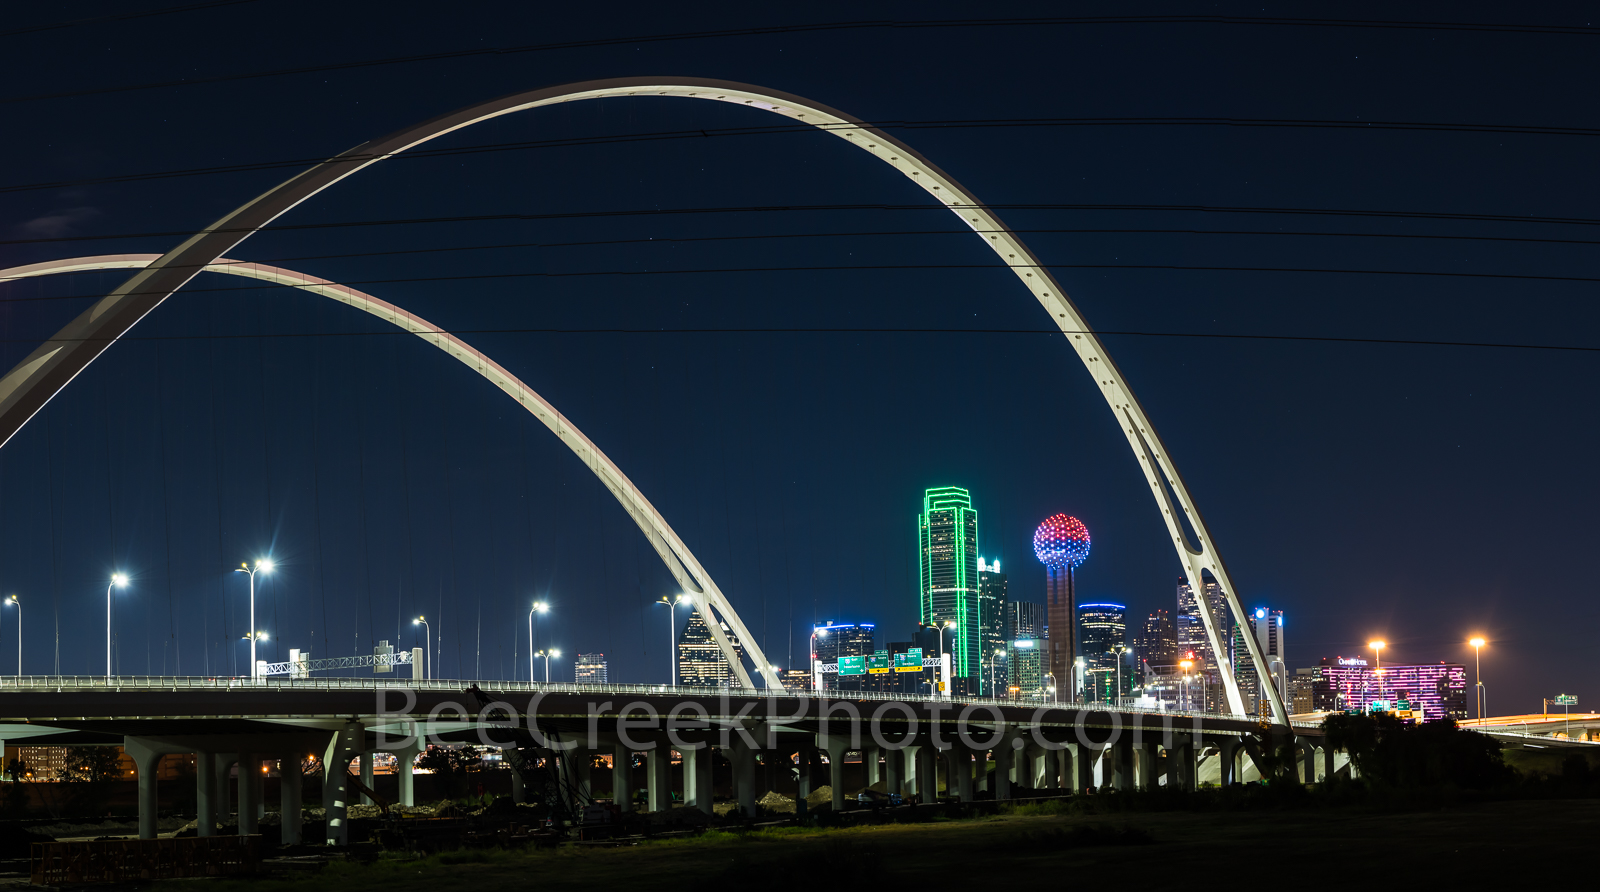 Dallas, skyline, cityscape, Margaret McDermott Bridge, downtown, dark, steel bridge, suspended, two arches, Trinity River, I30, Trinity project, Santiago Calatrava, pedestrian, bike path, park, trails, photo